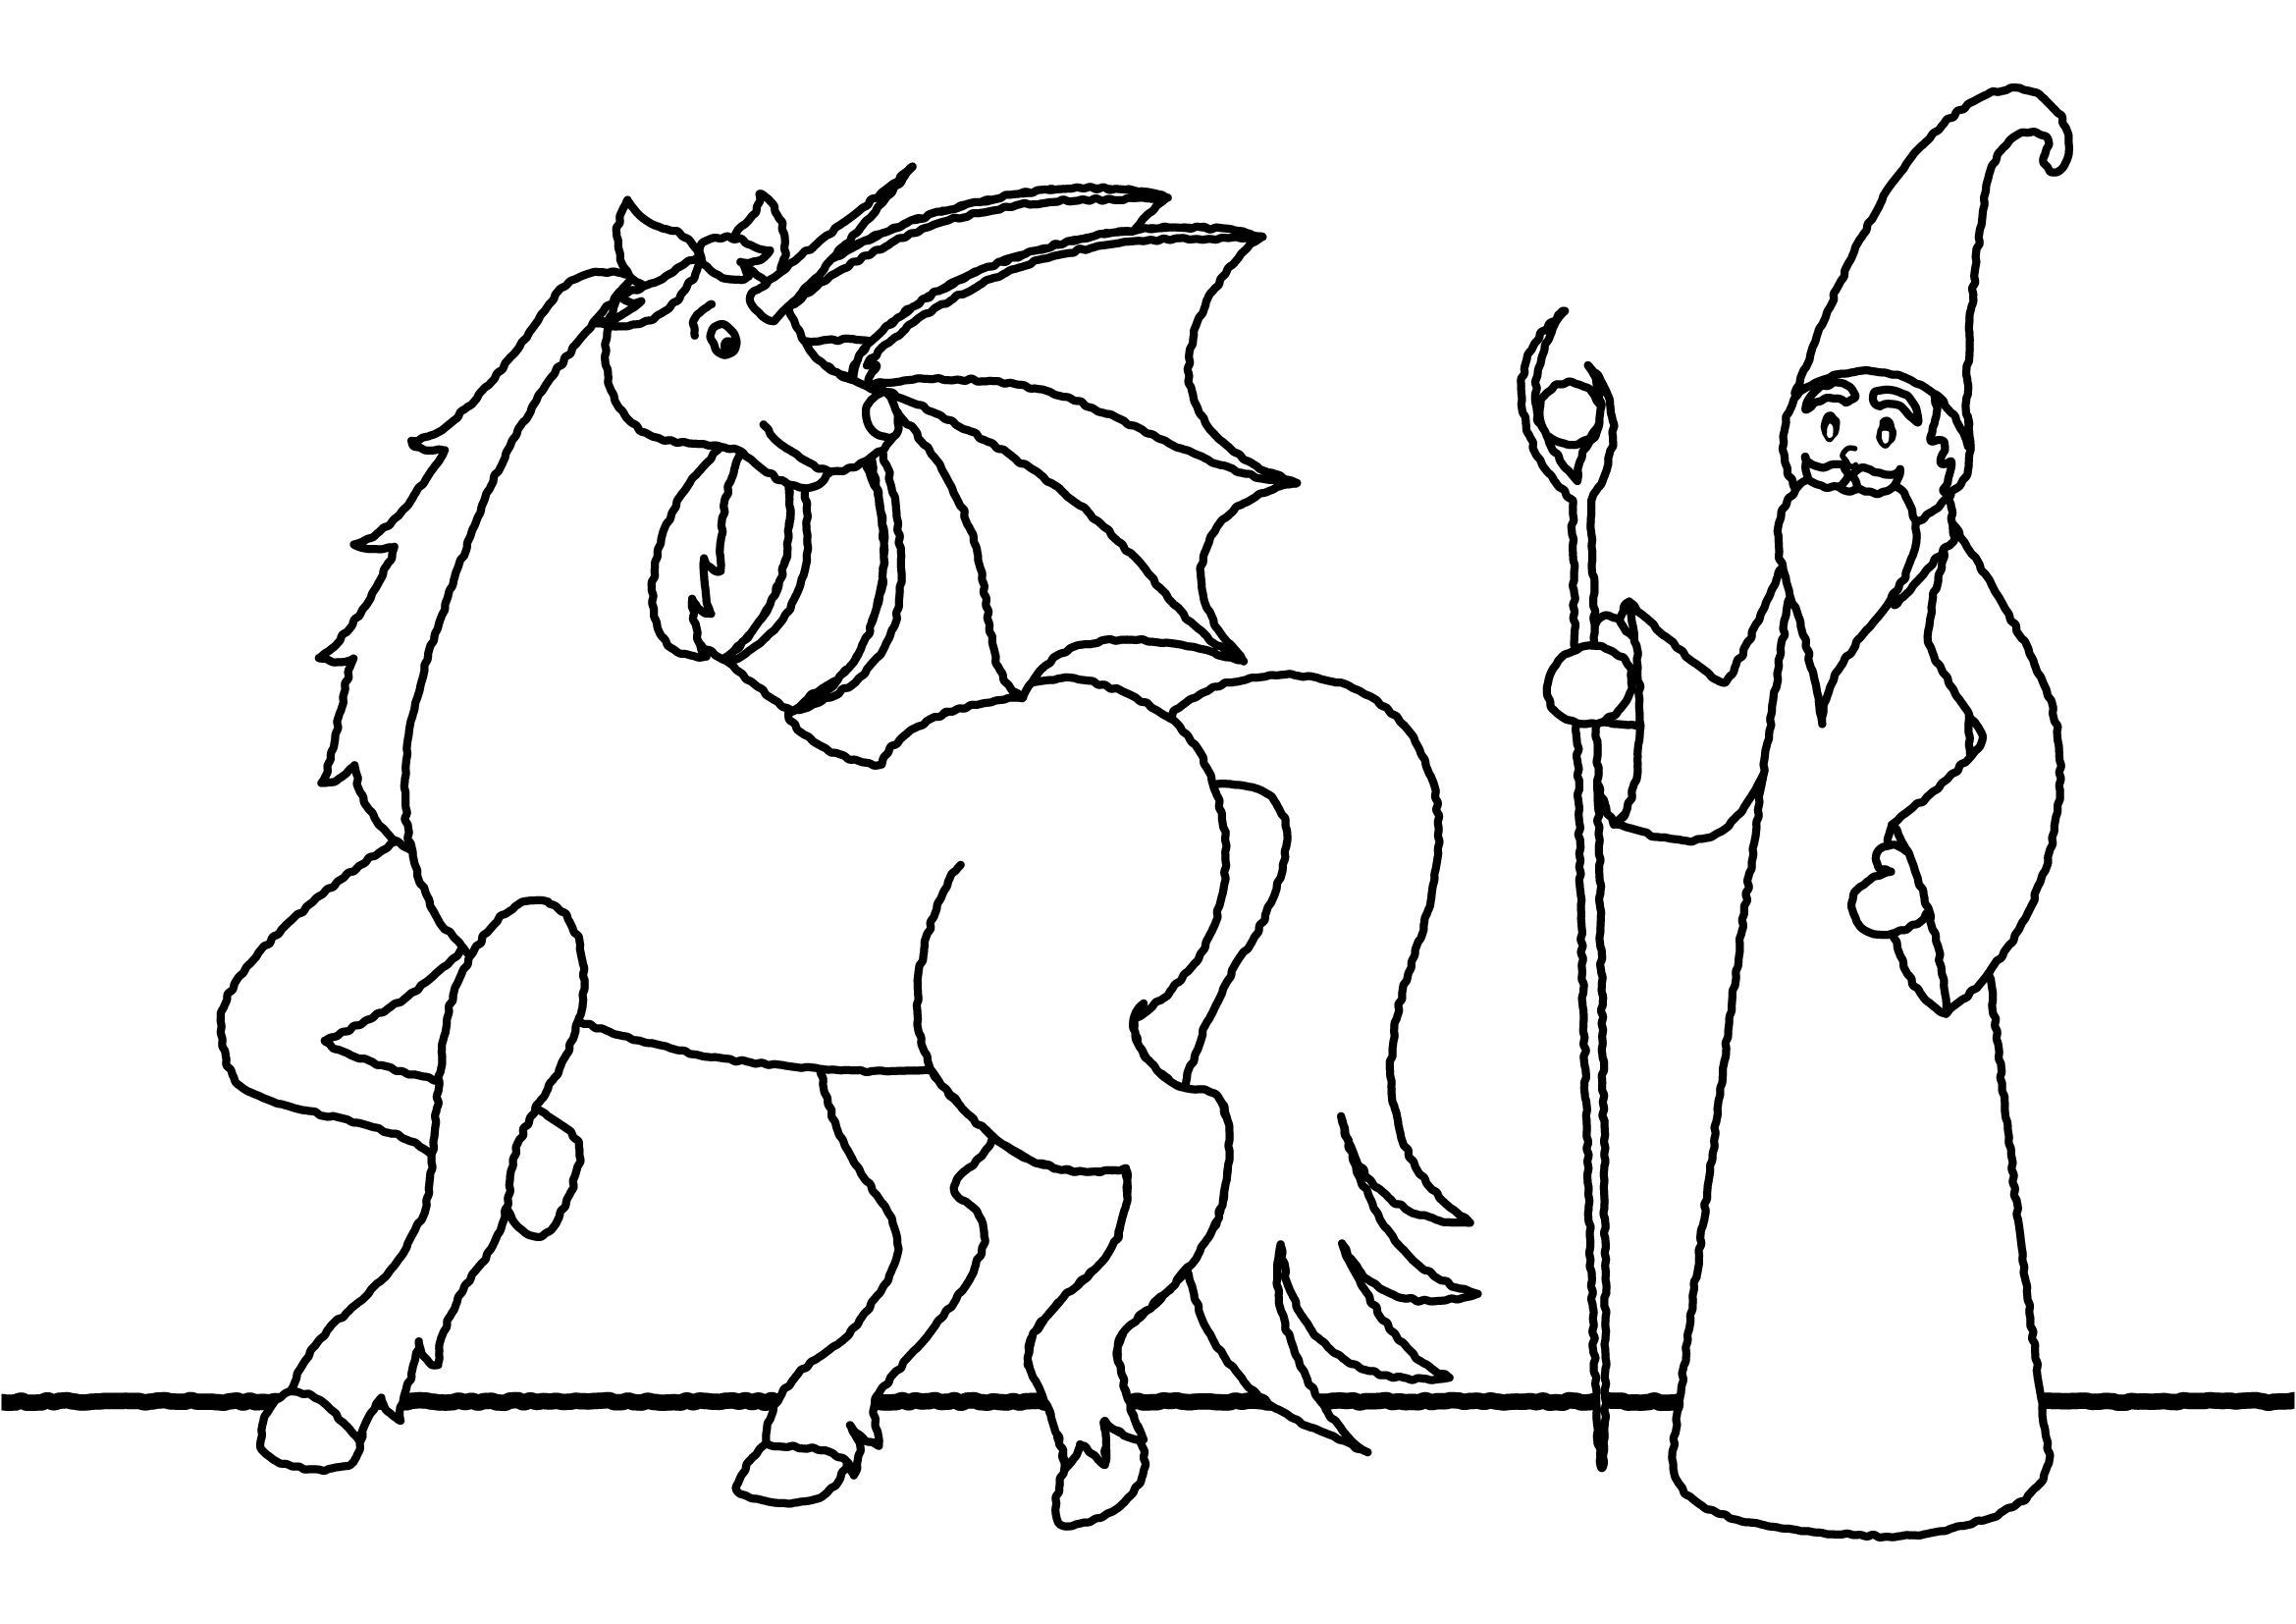 Unicorn Coloring Pages, 100 Black and White Pictures ...